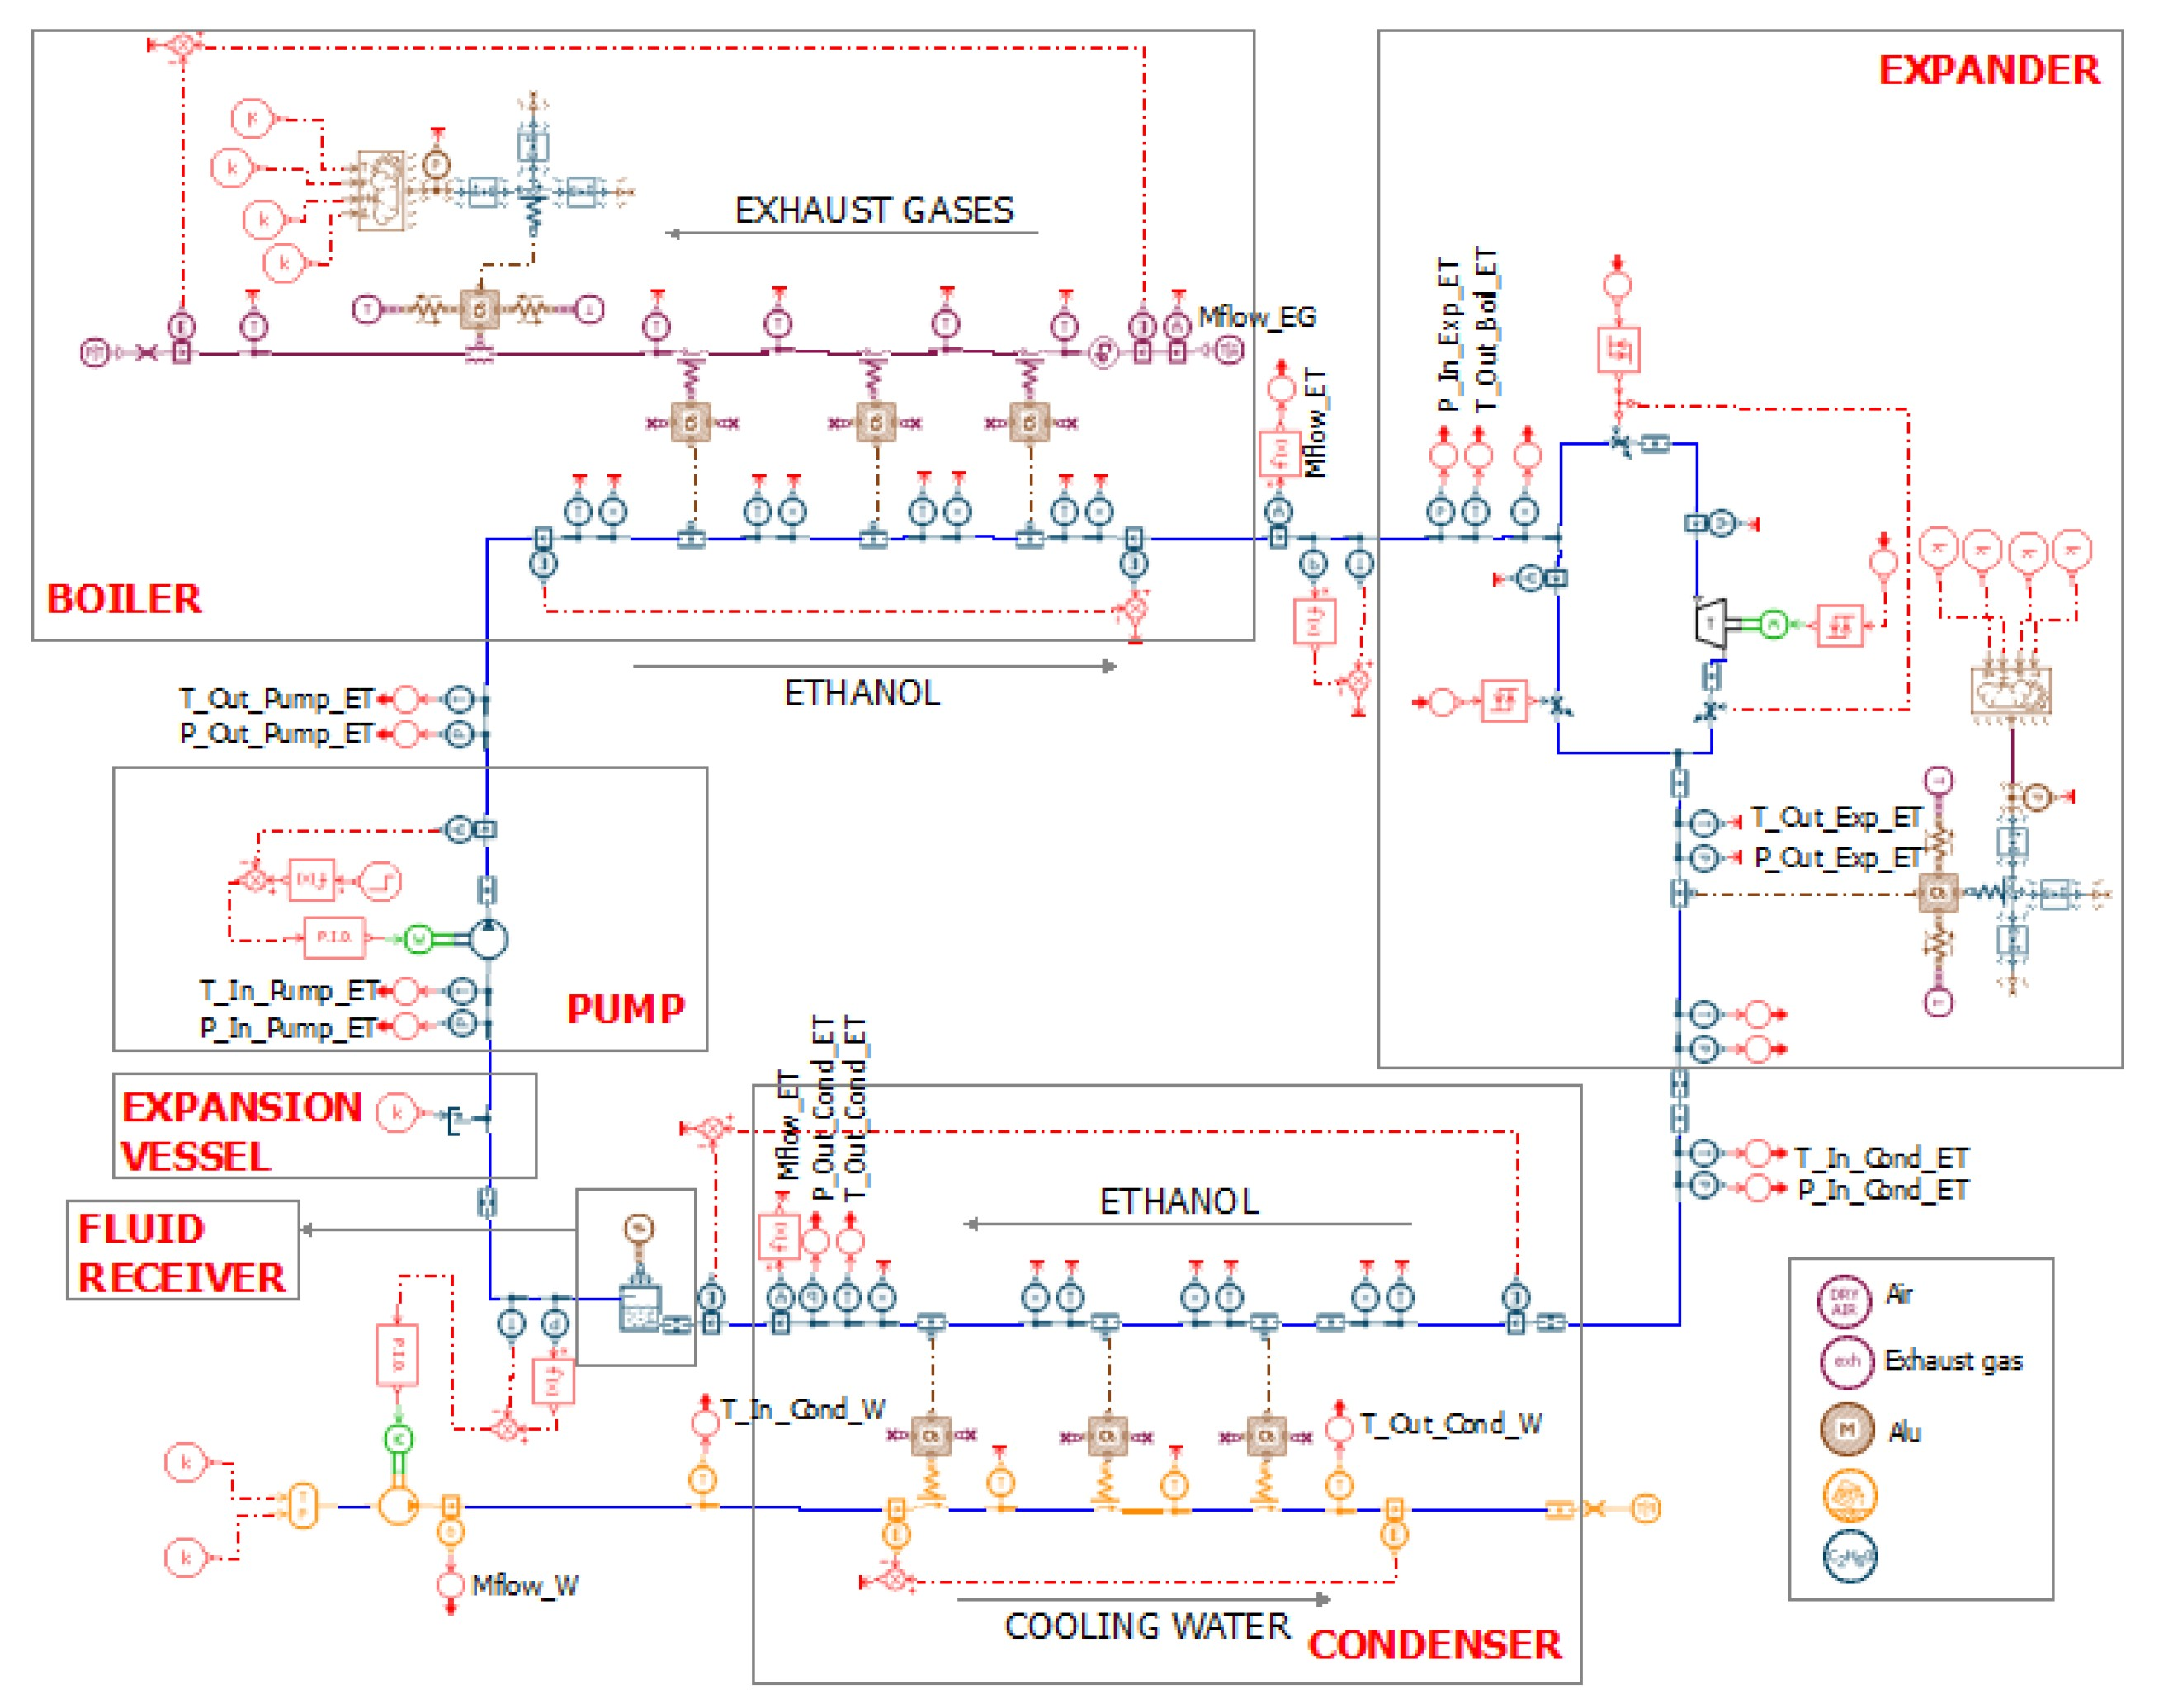 4 Cycle Engine Diagram Energies Free Full Text Of 4 Cycle Engine Diagram